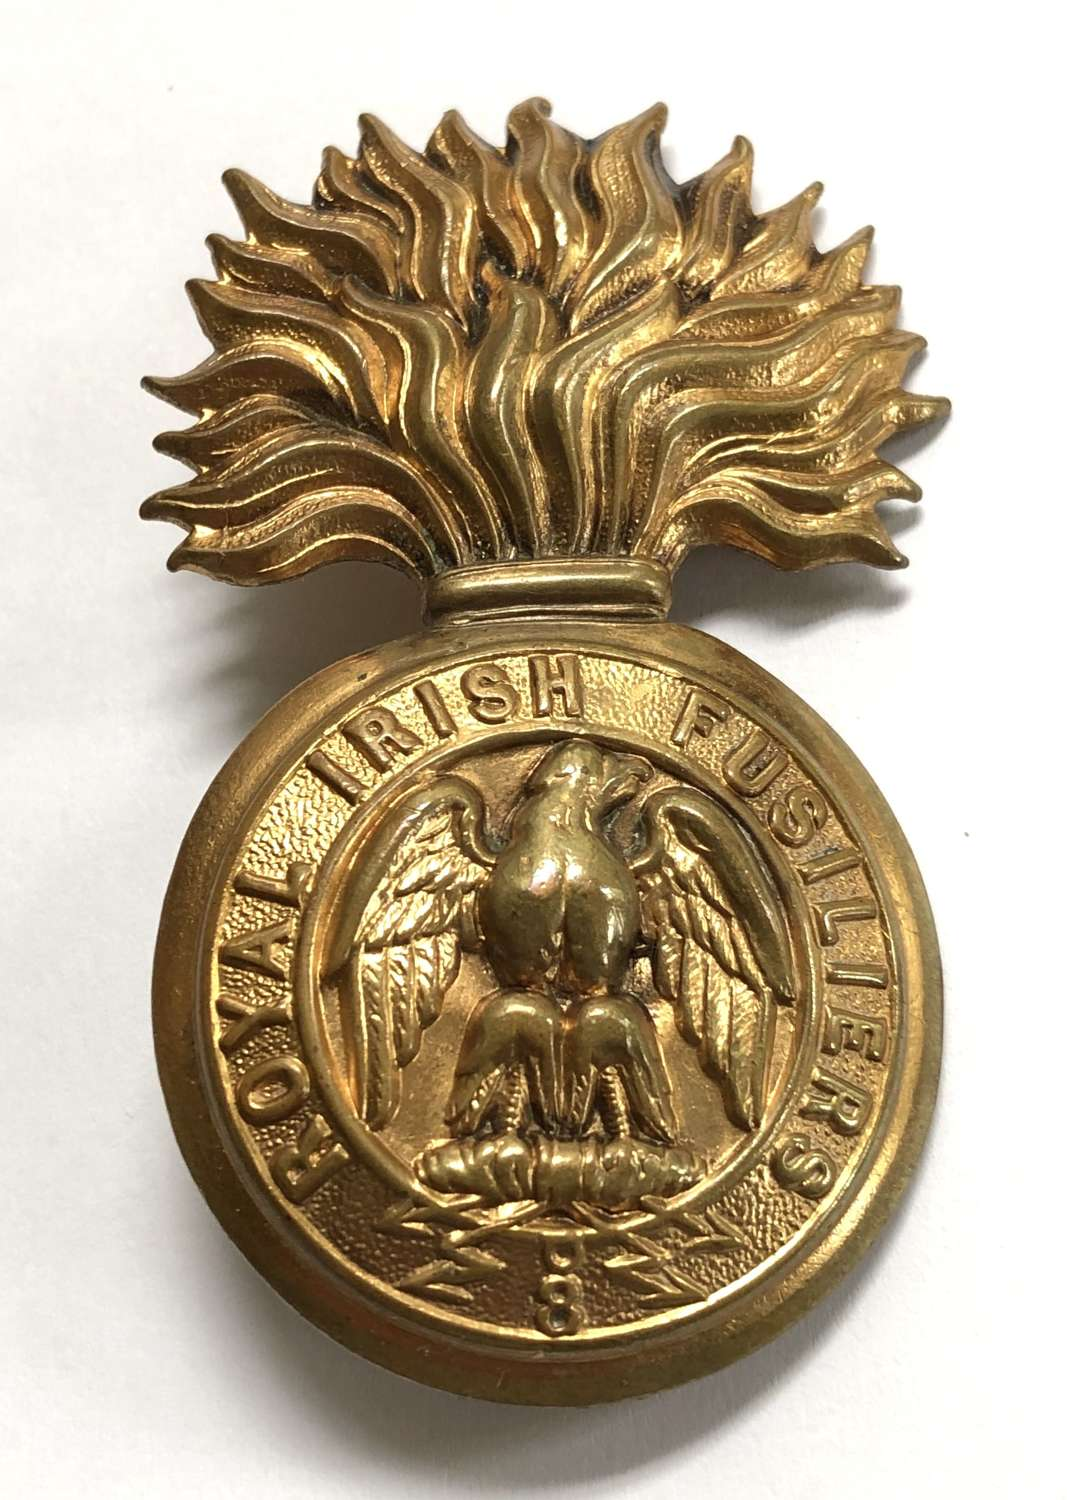 Princess Victoria's (Royal Irish Fusiliers) Victorian OR's glengar